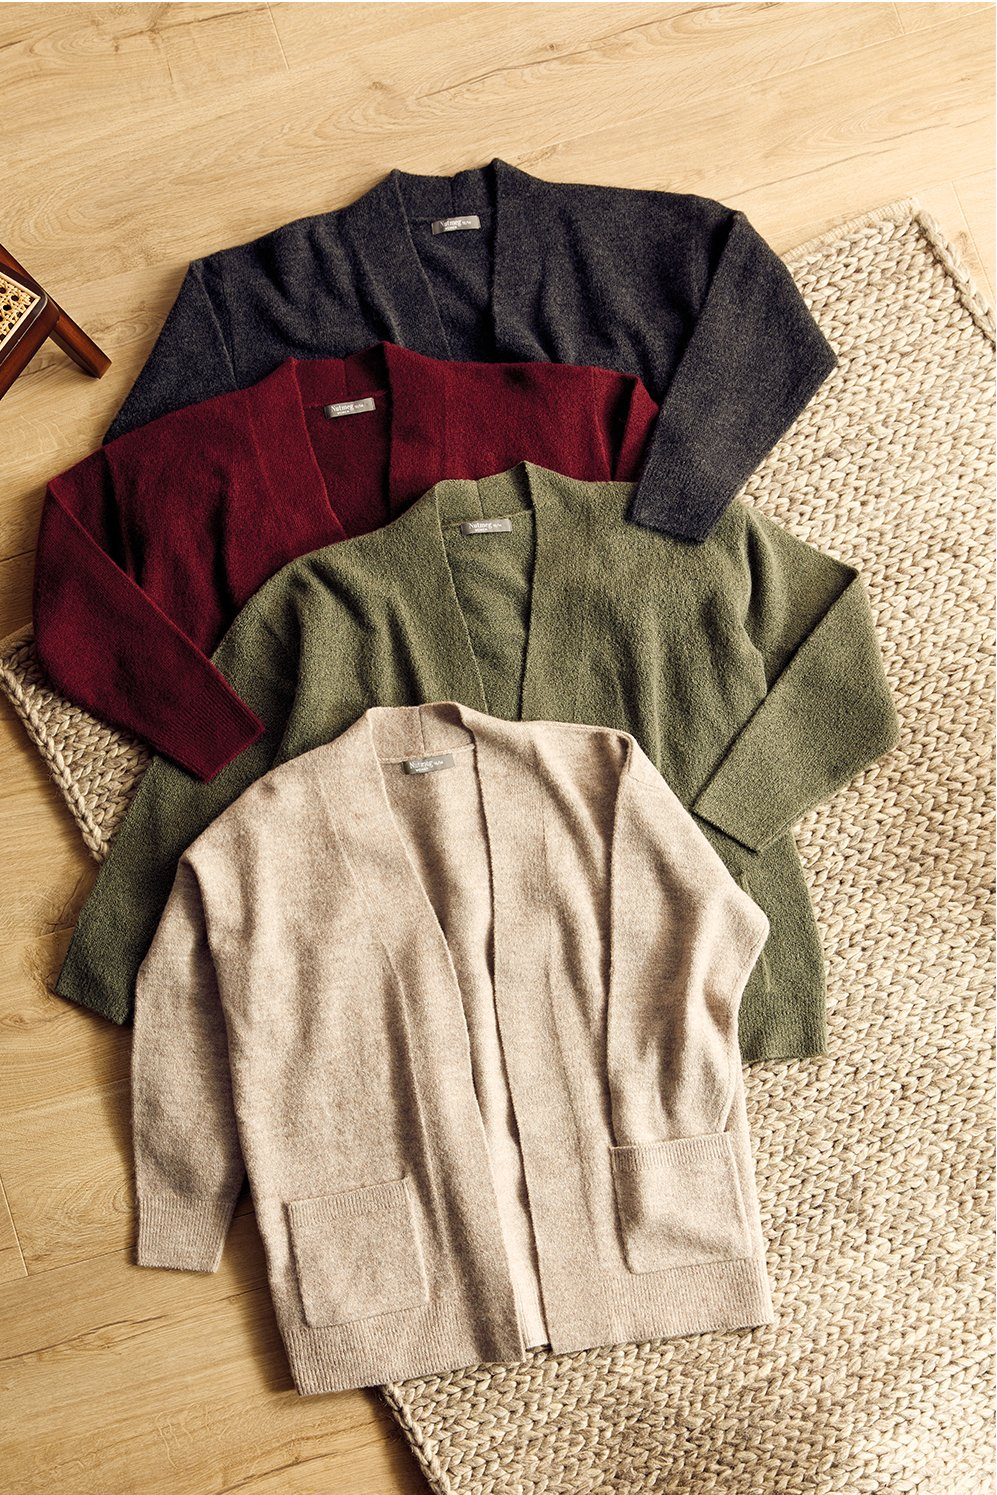 Layer up this Autumn